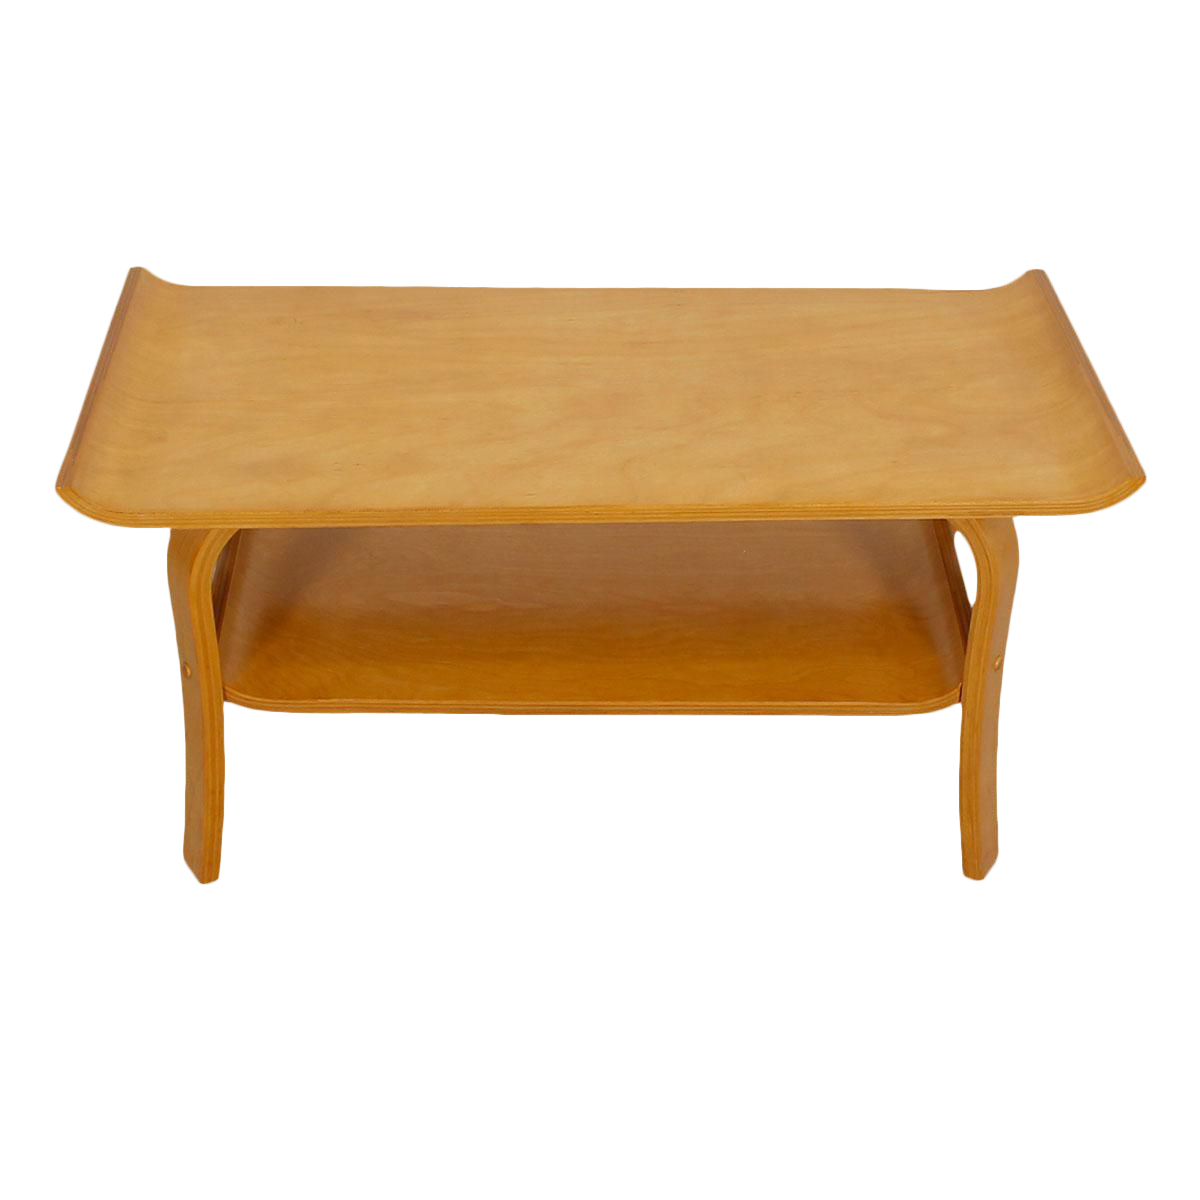 Mid century modern bentwood coffee table in birch with shelf mid century modern bentwood coffee table in birch with shelf chairish geotapseo Gallery